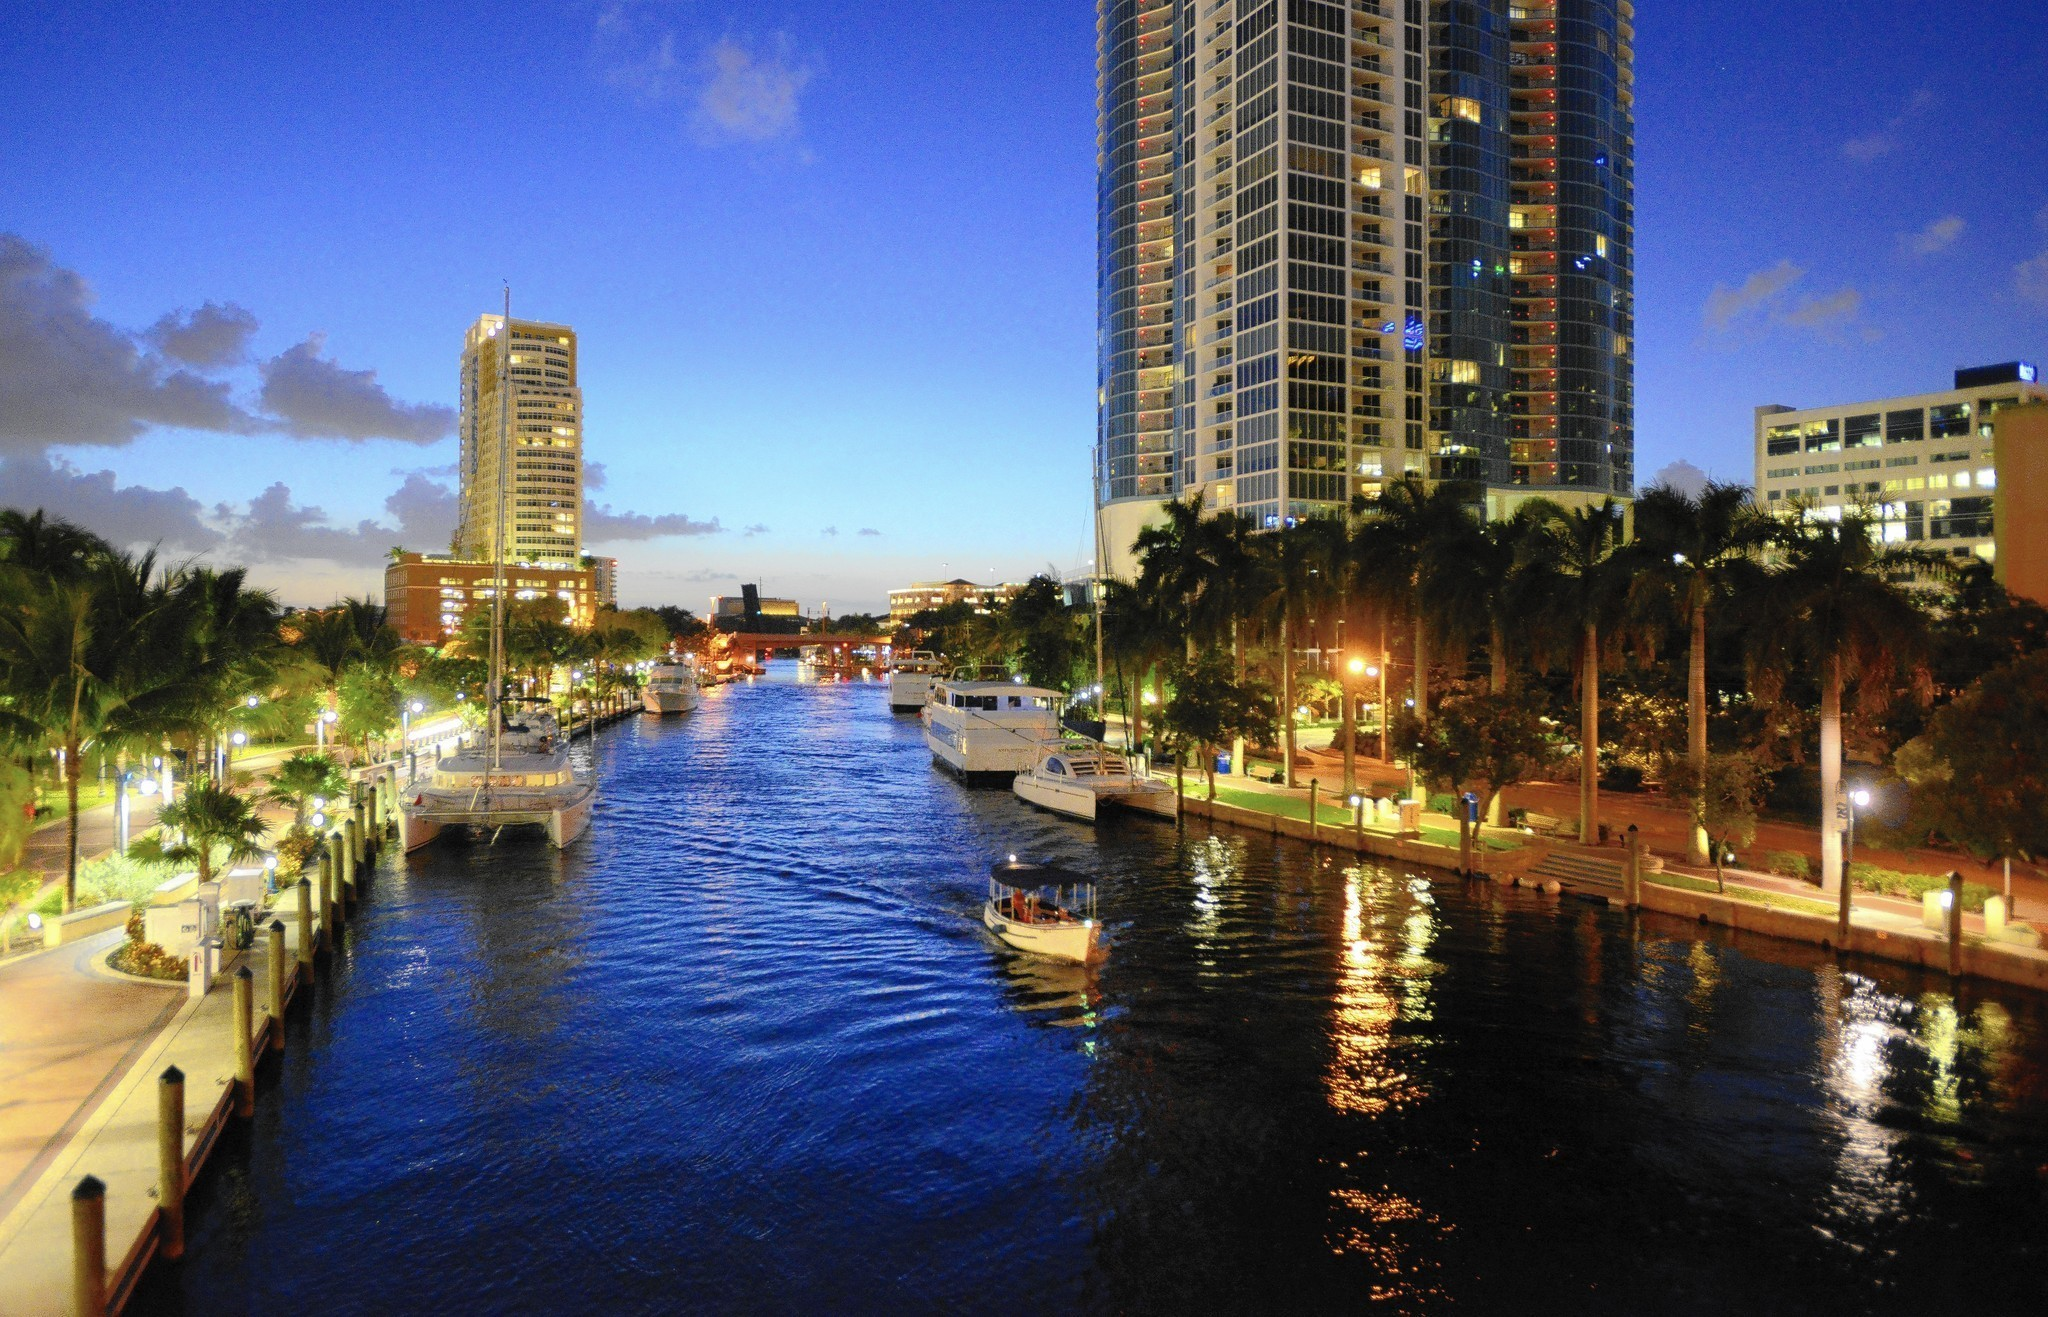 Ft lauderdale places to meet singles Christian Singles Ft. Lauderdale & FL Dating, Start Here!